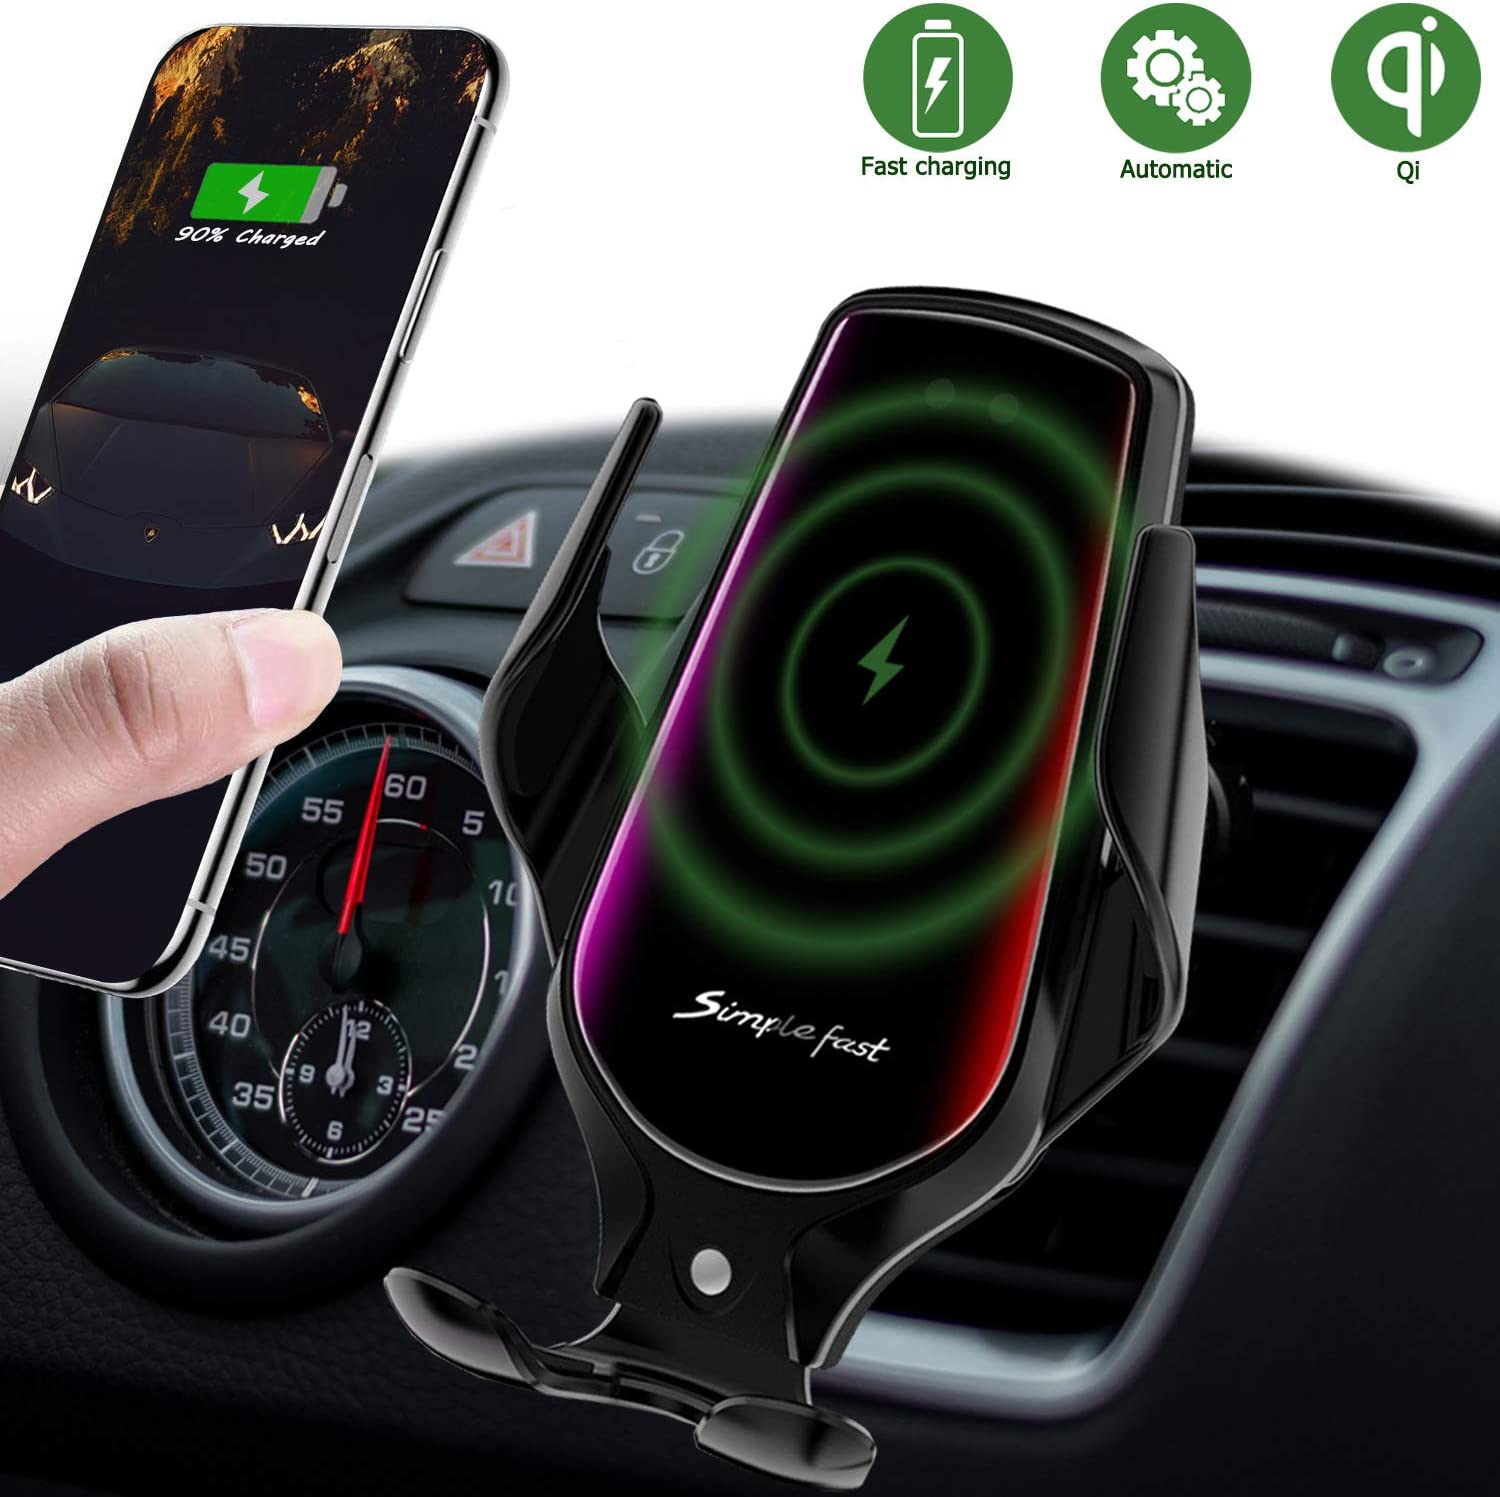 LUKKAHH R3 Wireless Car Charger Mount,Auto-Clamping Air Vent Phone Holder,10W Qi Fast Car Charging,Compatible iPhone 11/11 Pro/11 Pro Max/XS/XS Max/X/8/8+, Samsung Note9/Note10/S9+/S10+(Deep Black)